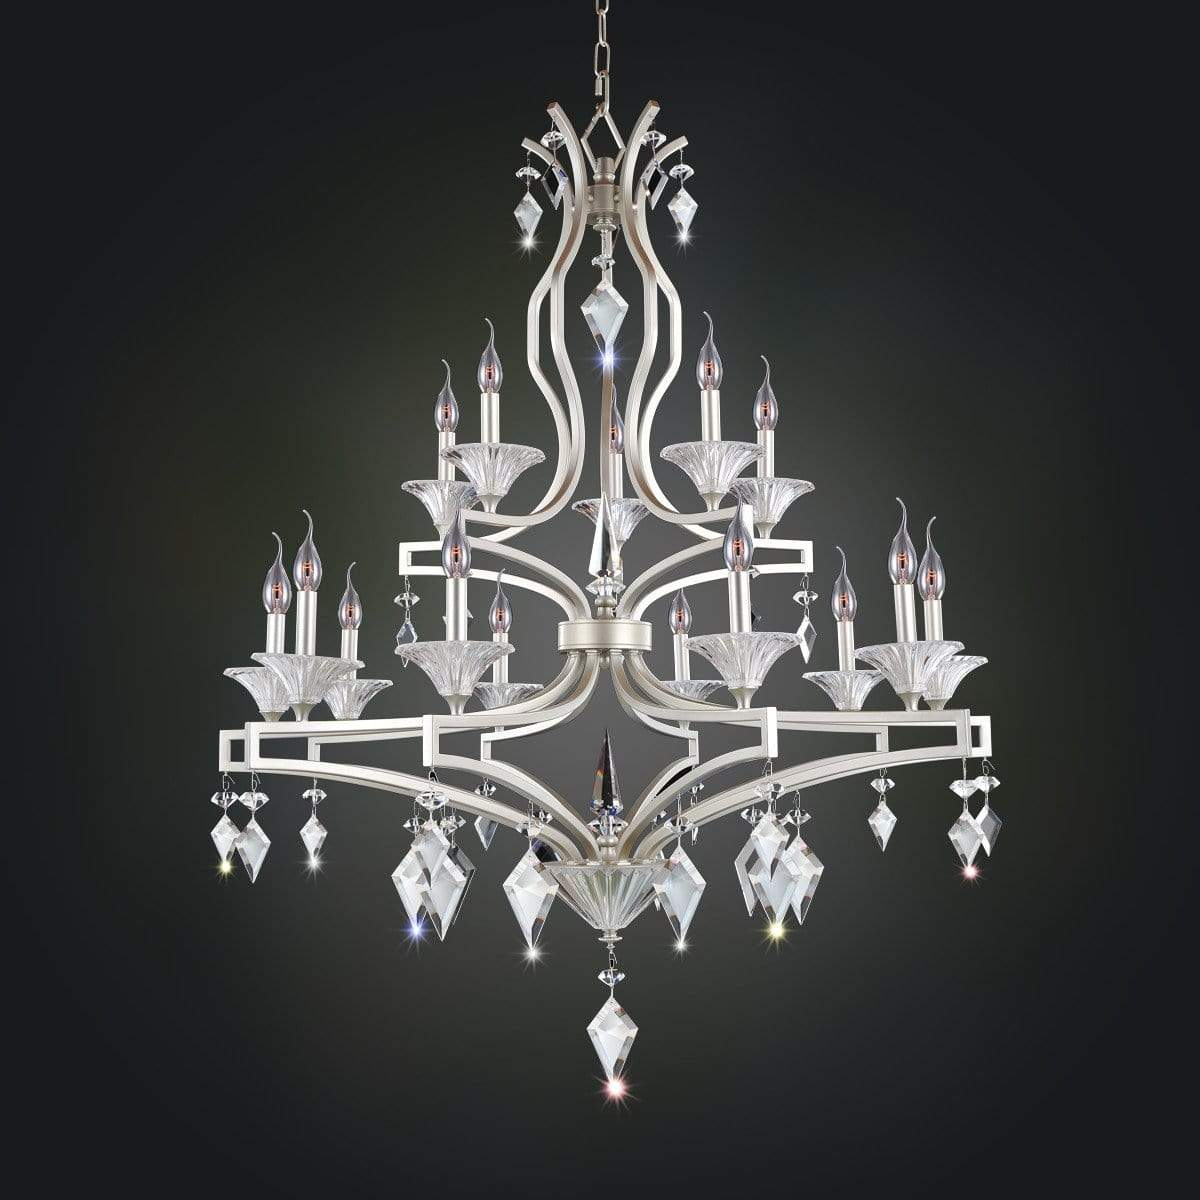 Allegri by Kalco Lighting Chandeliers Tarnished Silver / Firenze Clear Florence 15 Light Chandelier From Allegri by Kalco Lighting 11677